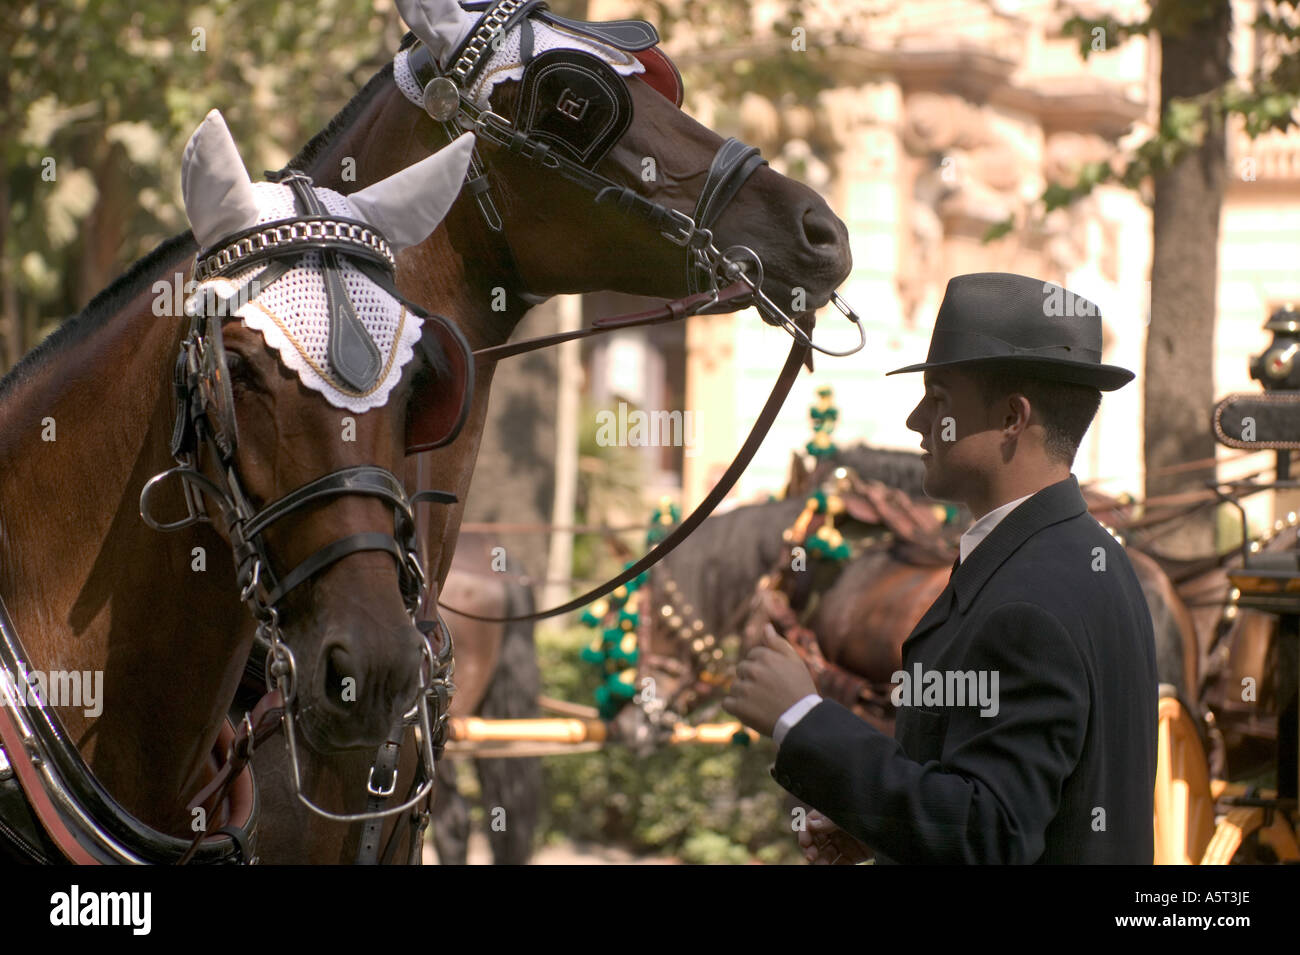 A pair of beautifully decorated horses ready for the parade at the annual feria in Malaga, Spain - Stock Image